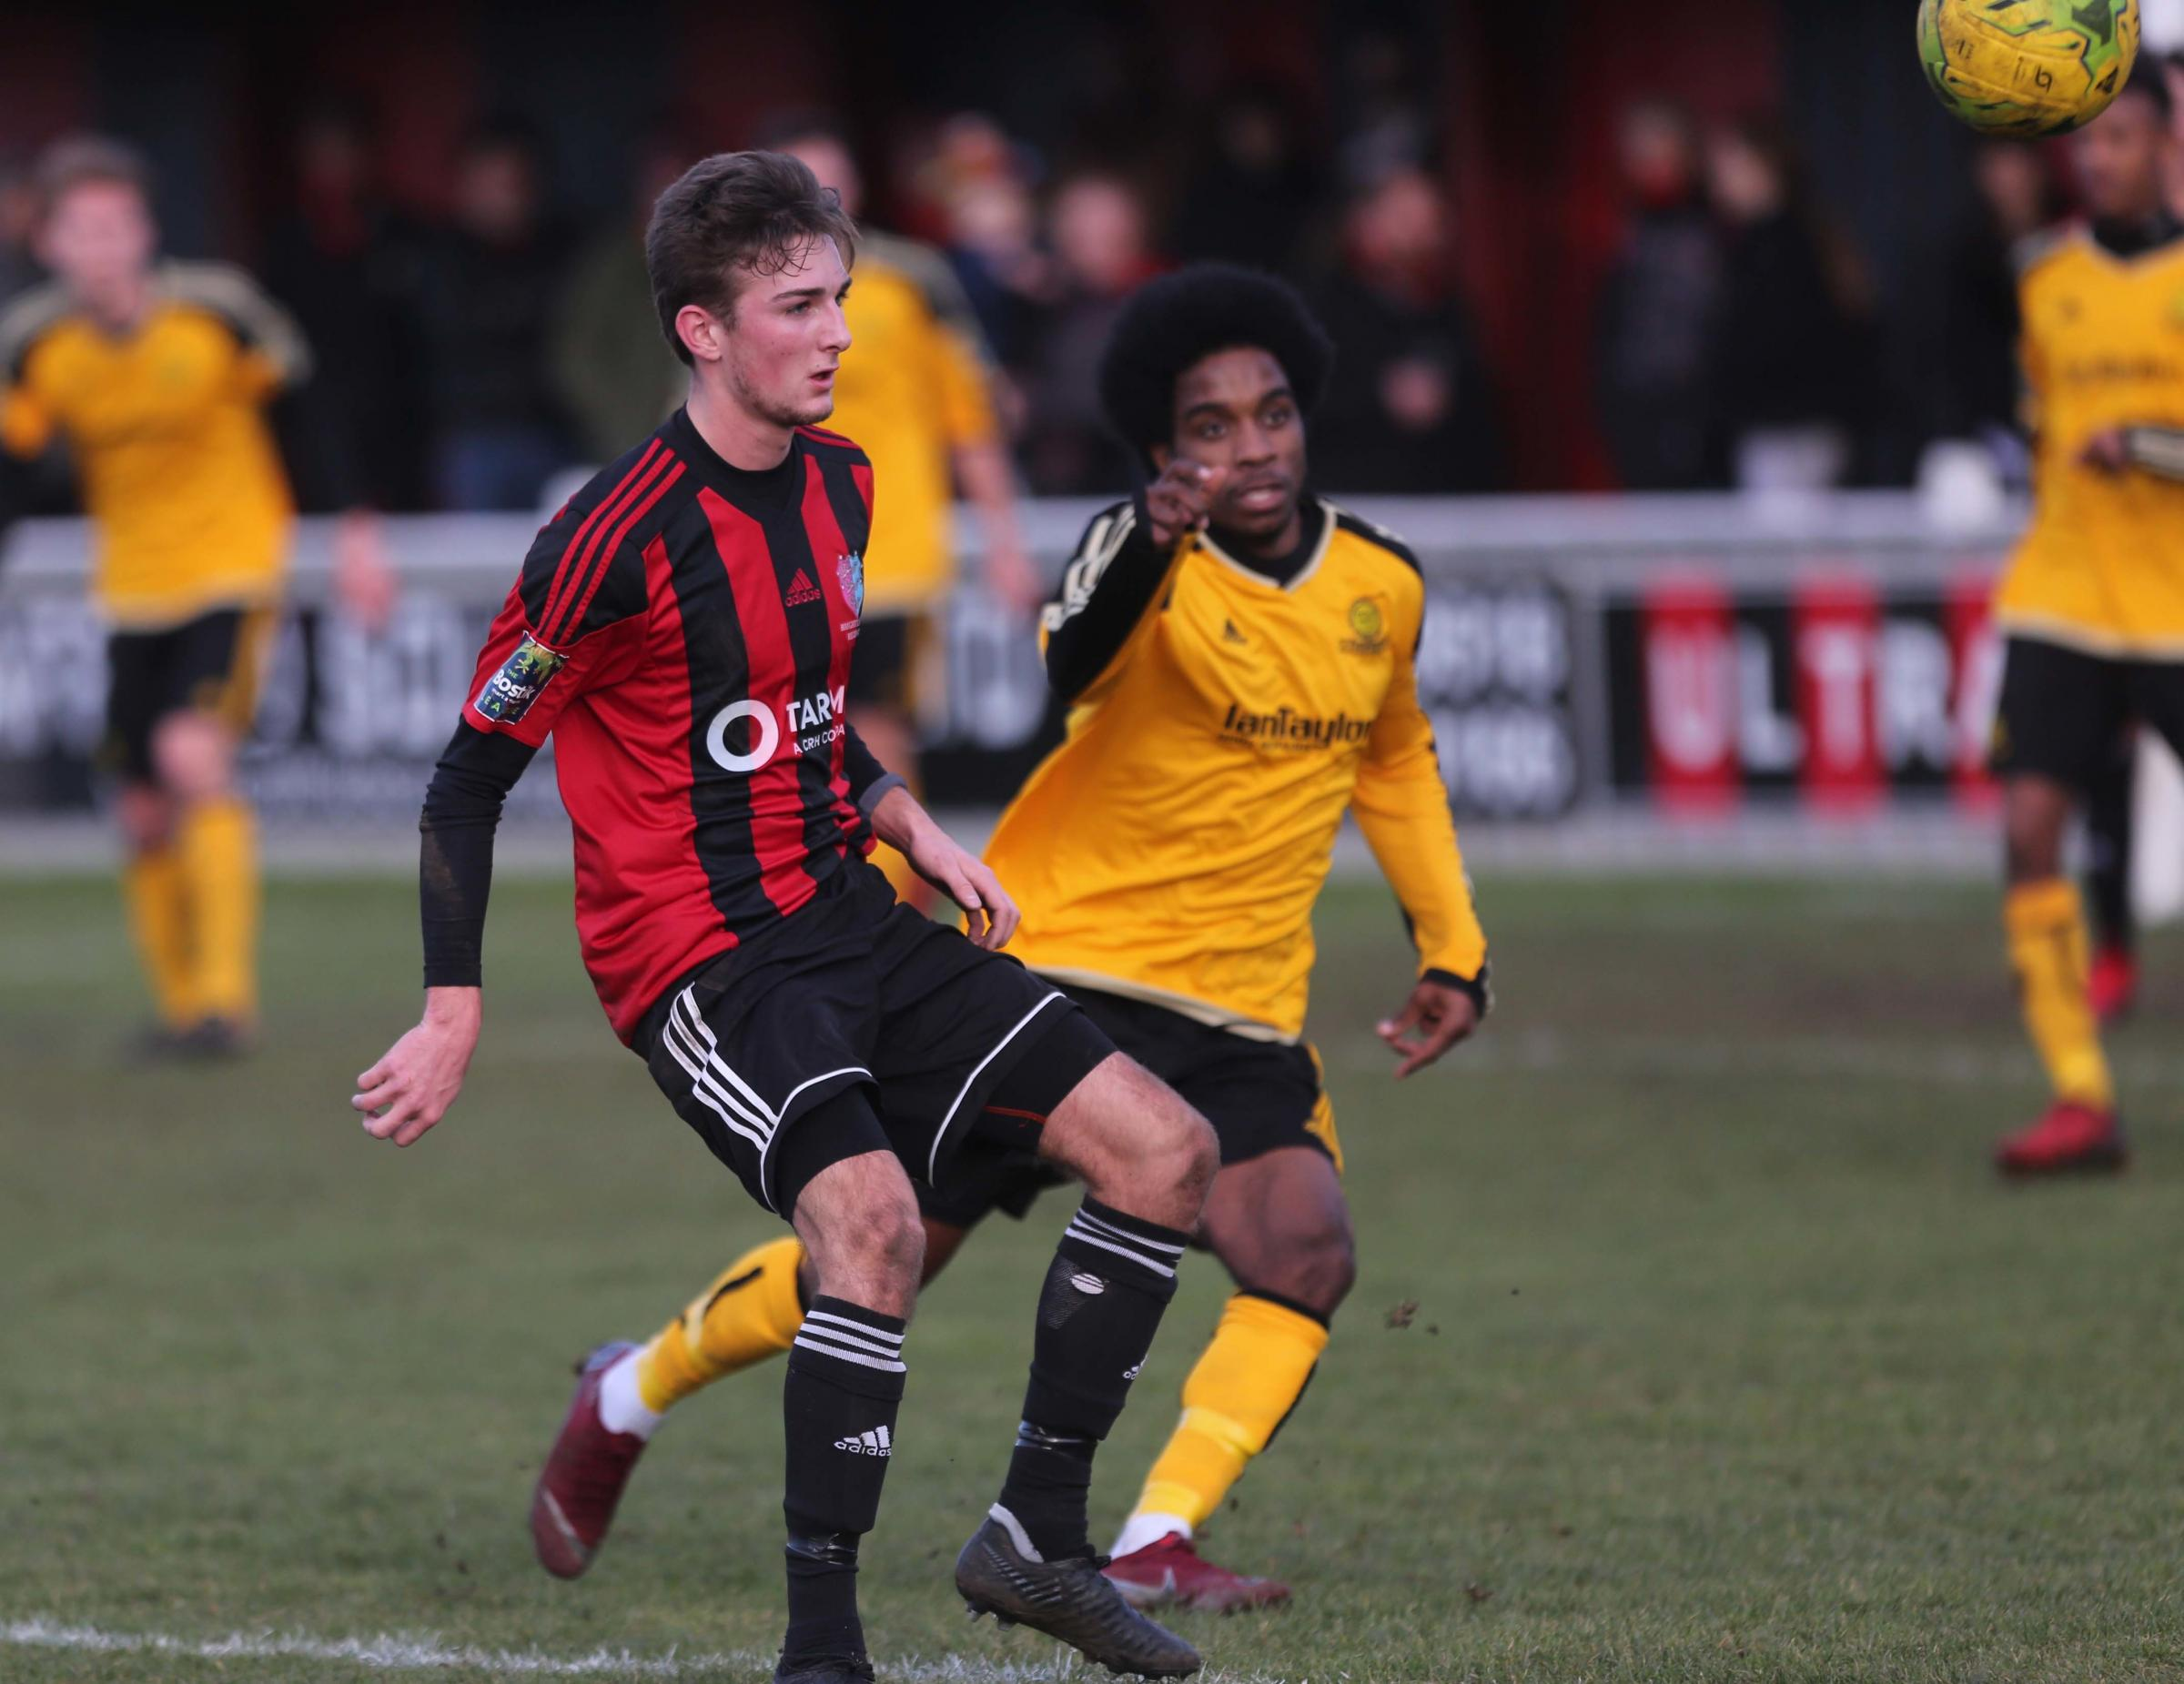 Action from this afternoon's Brightlingsea match against Merstham Picture: Seana Hughes